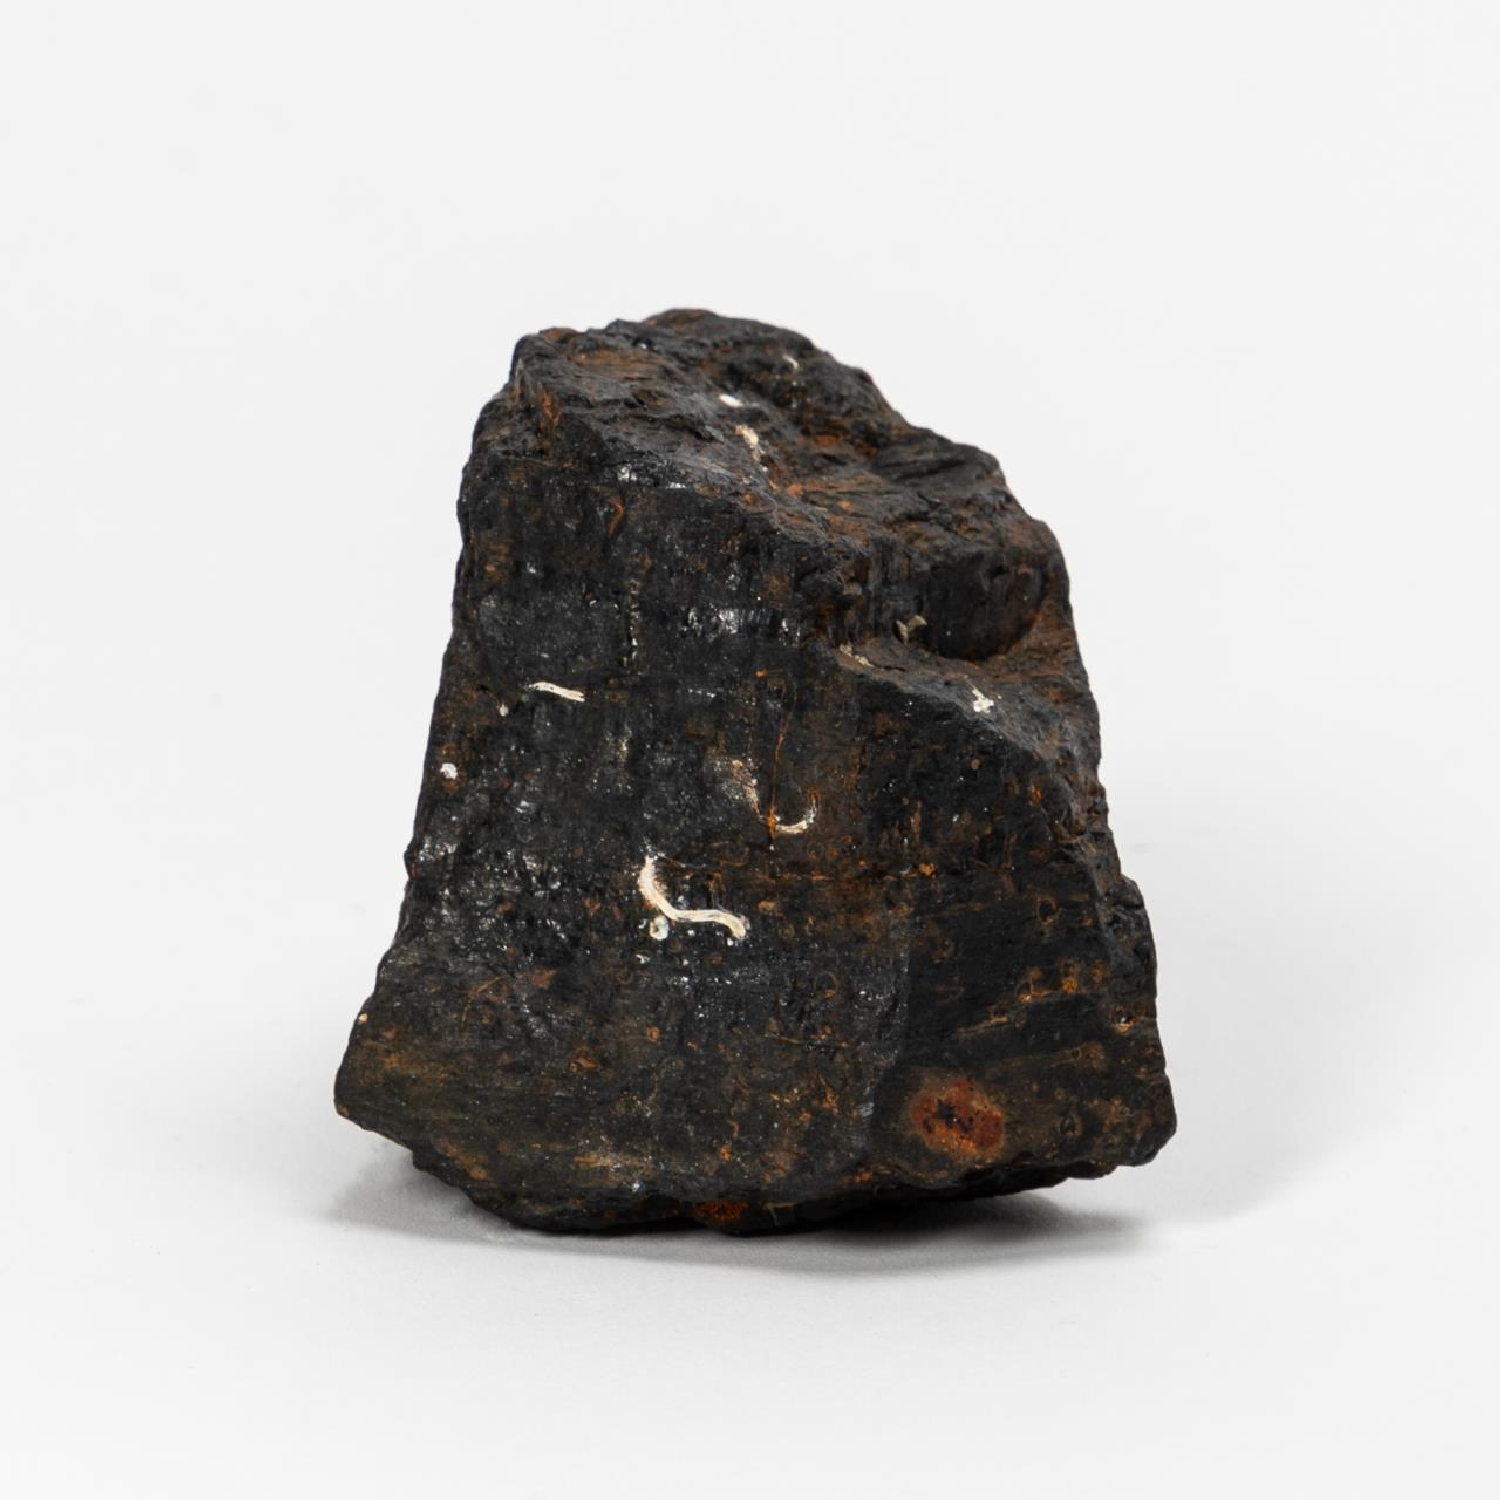 RMS CARPATHIA, SALVAGED SINGLE PIECE OF COAL - Image 2 of 4